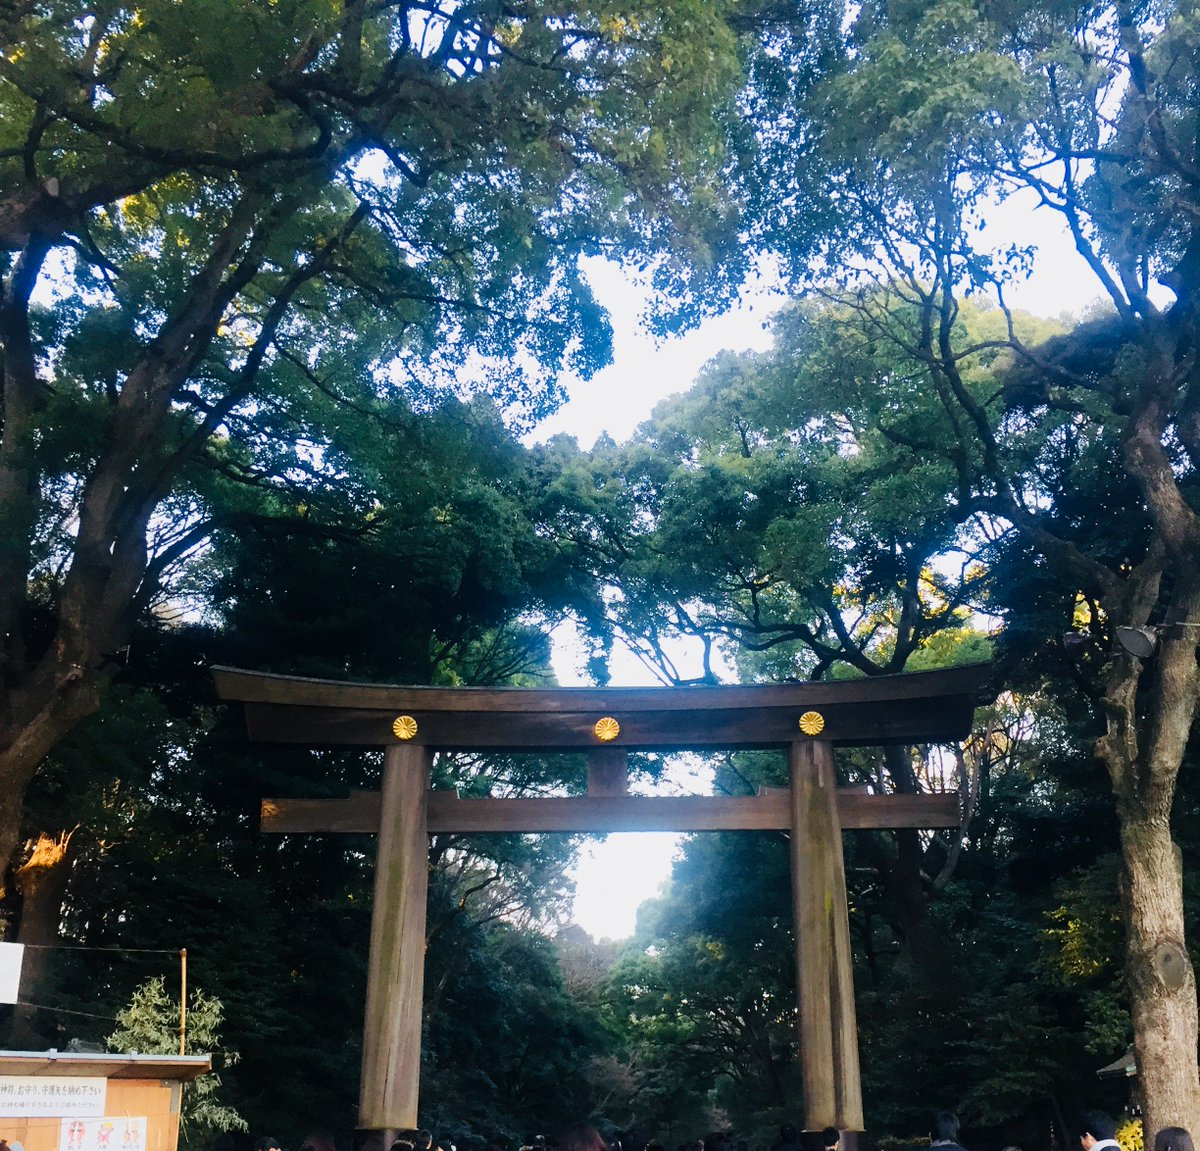 【staff 4PM blog】ちょっと遅めの初詣-First Visit to Shrine  https://t.co/WxysDJXiIe https://t.co/7pTIHhC4mt